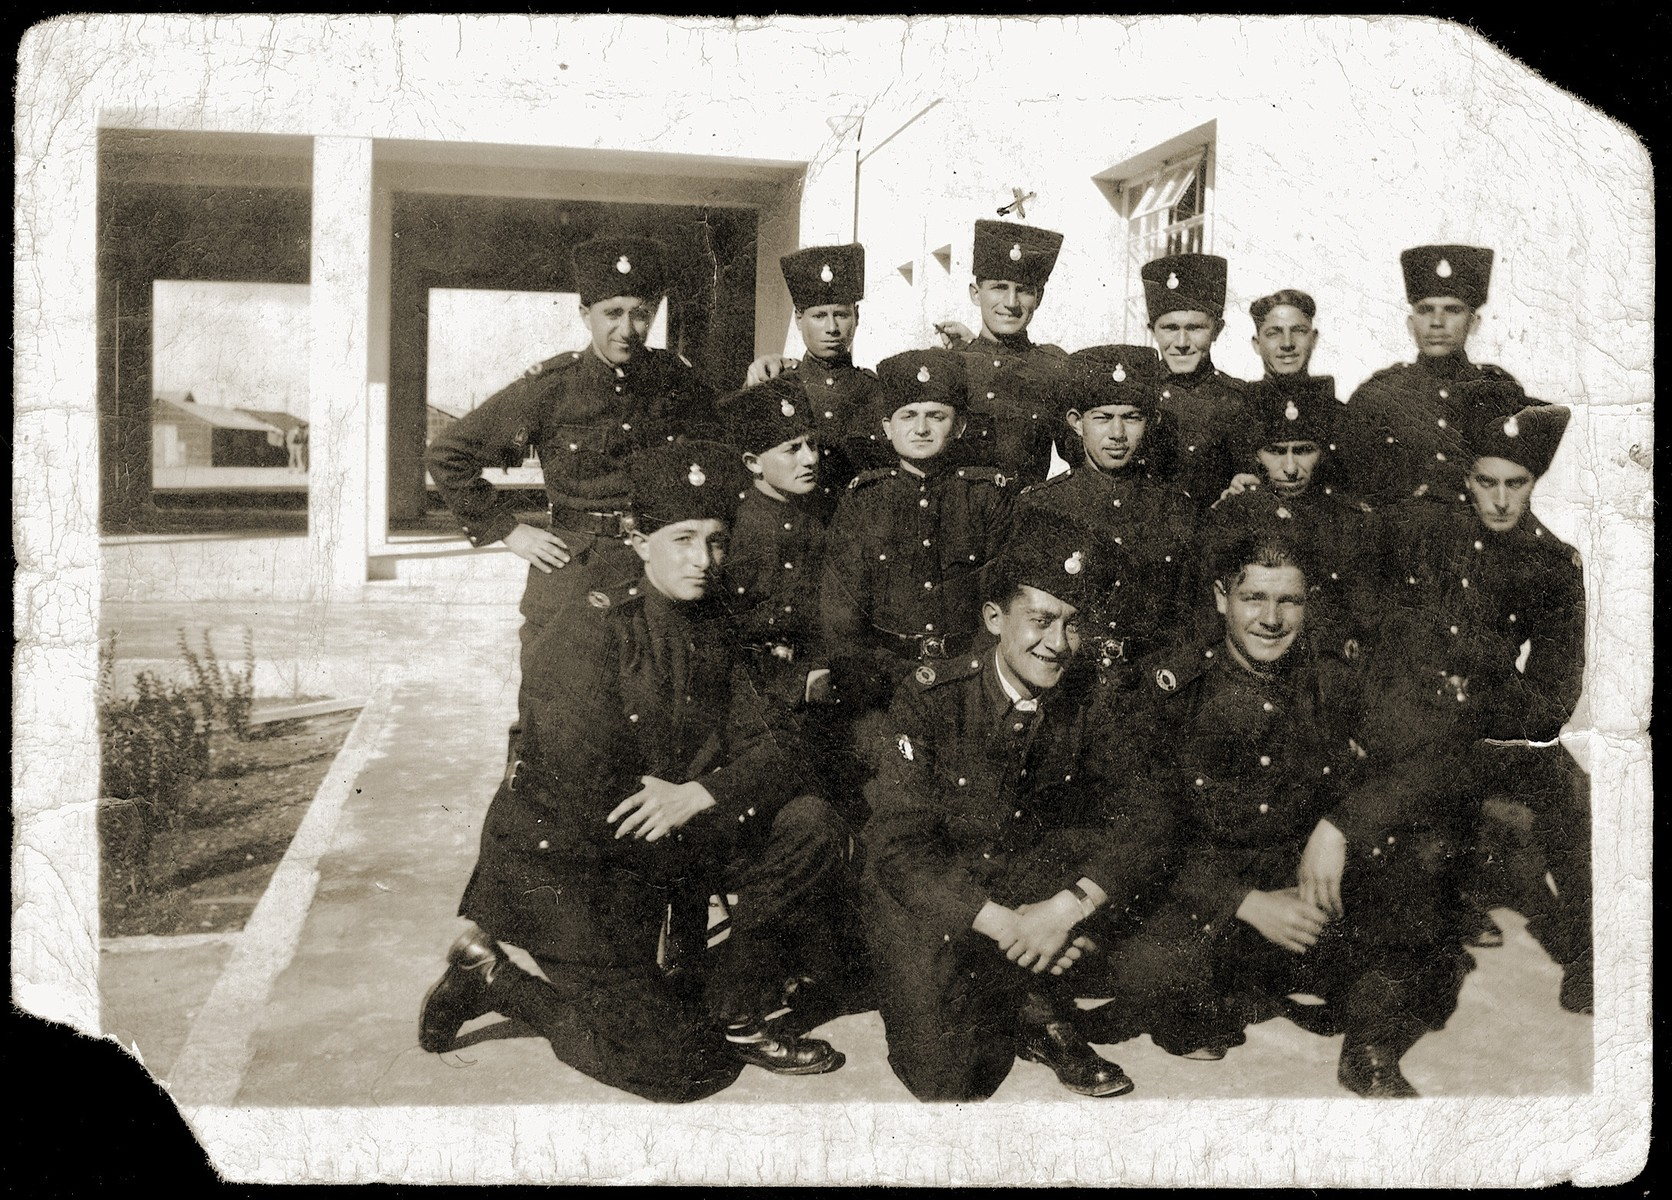 Group portrait of members of the British mandate police force in Haifa.    Among those pictured is Mordechai Schwarcz.